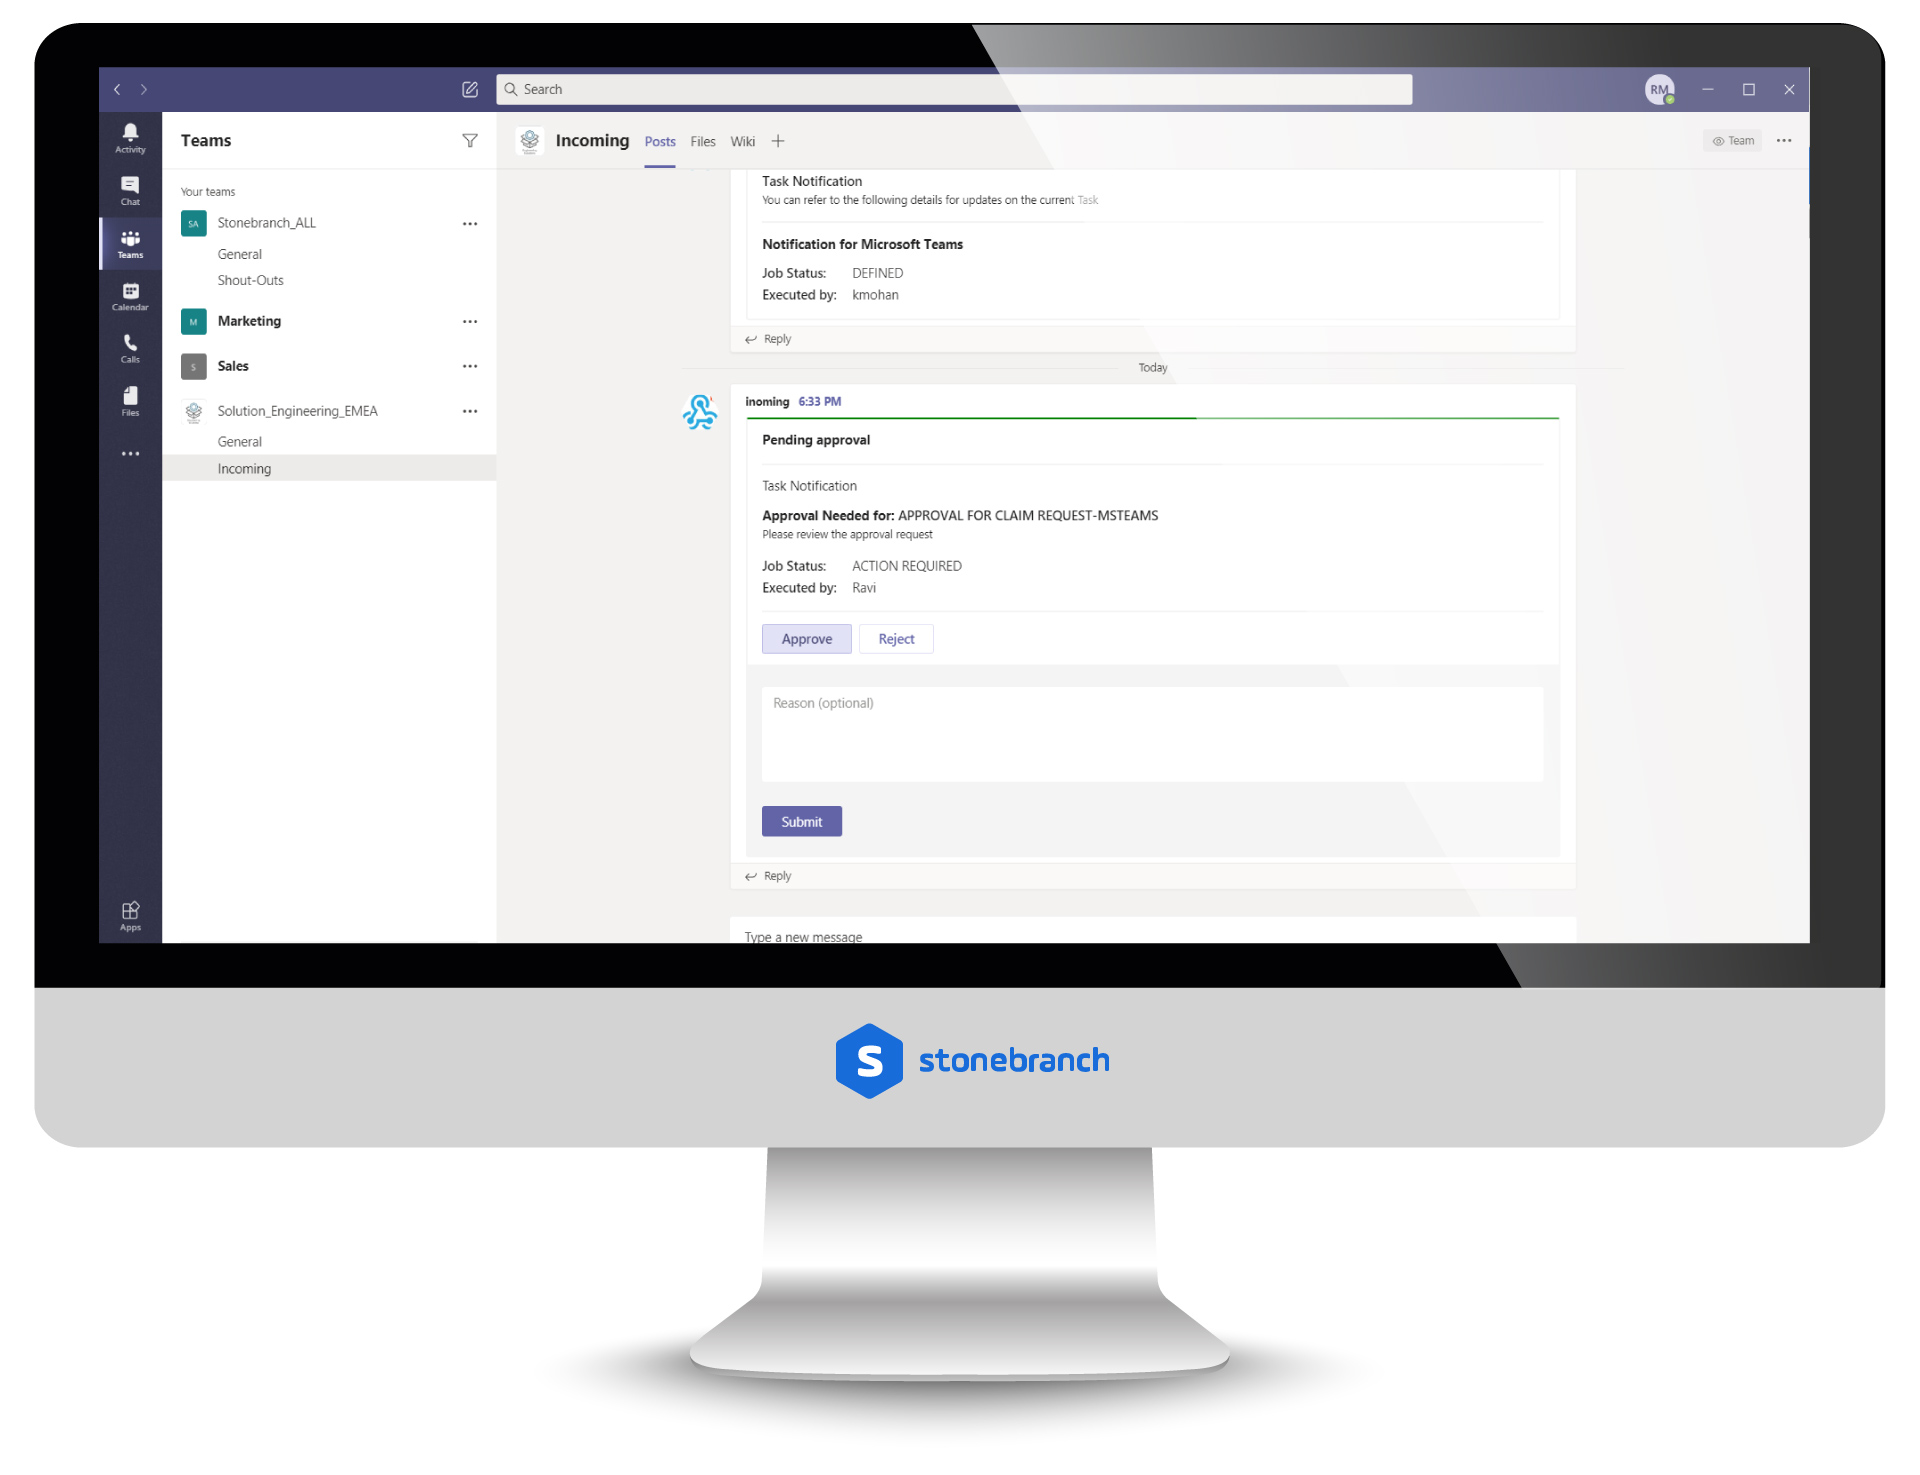 Microsoft Teams: Send and Receive Notifications